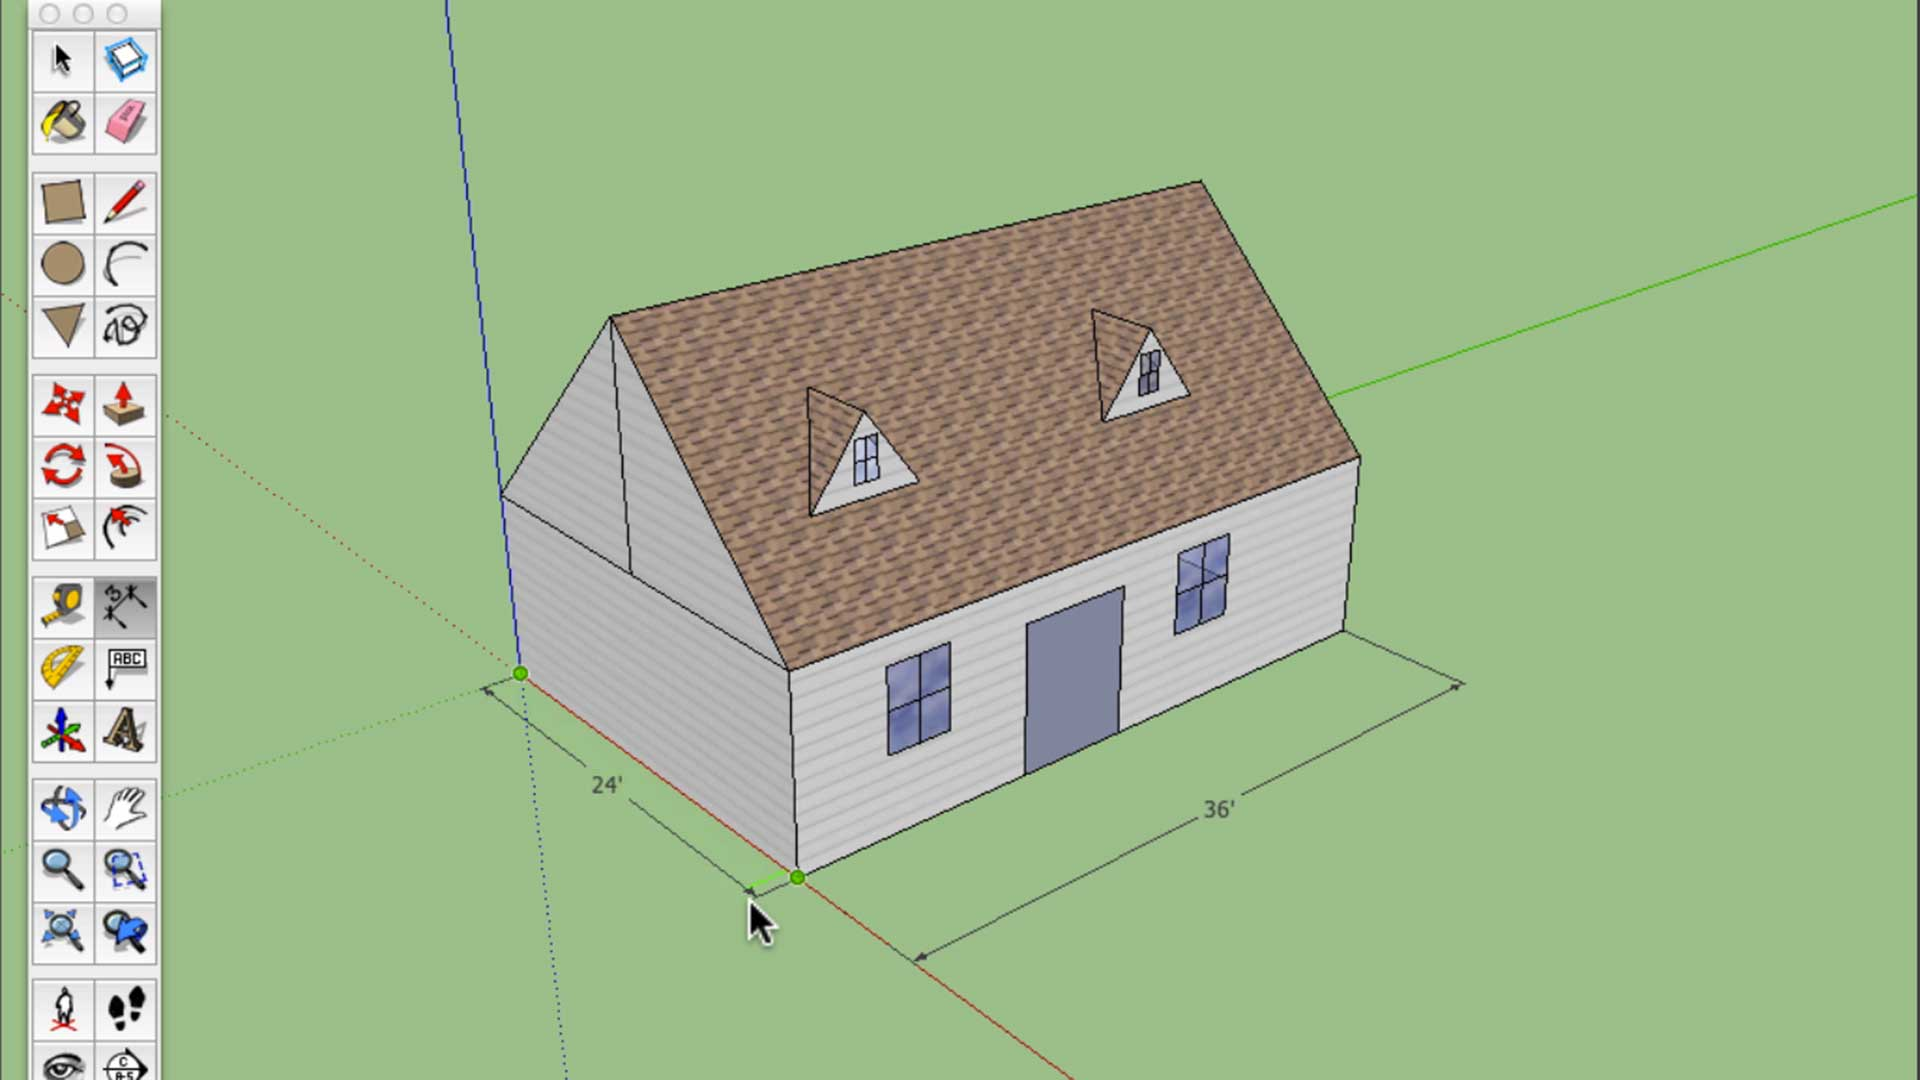 3-d house created in sketchup